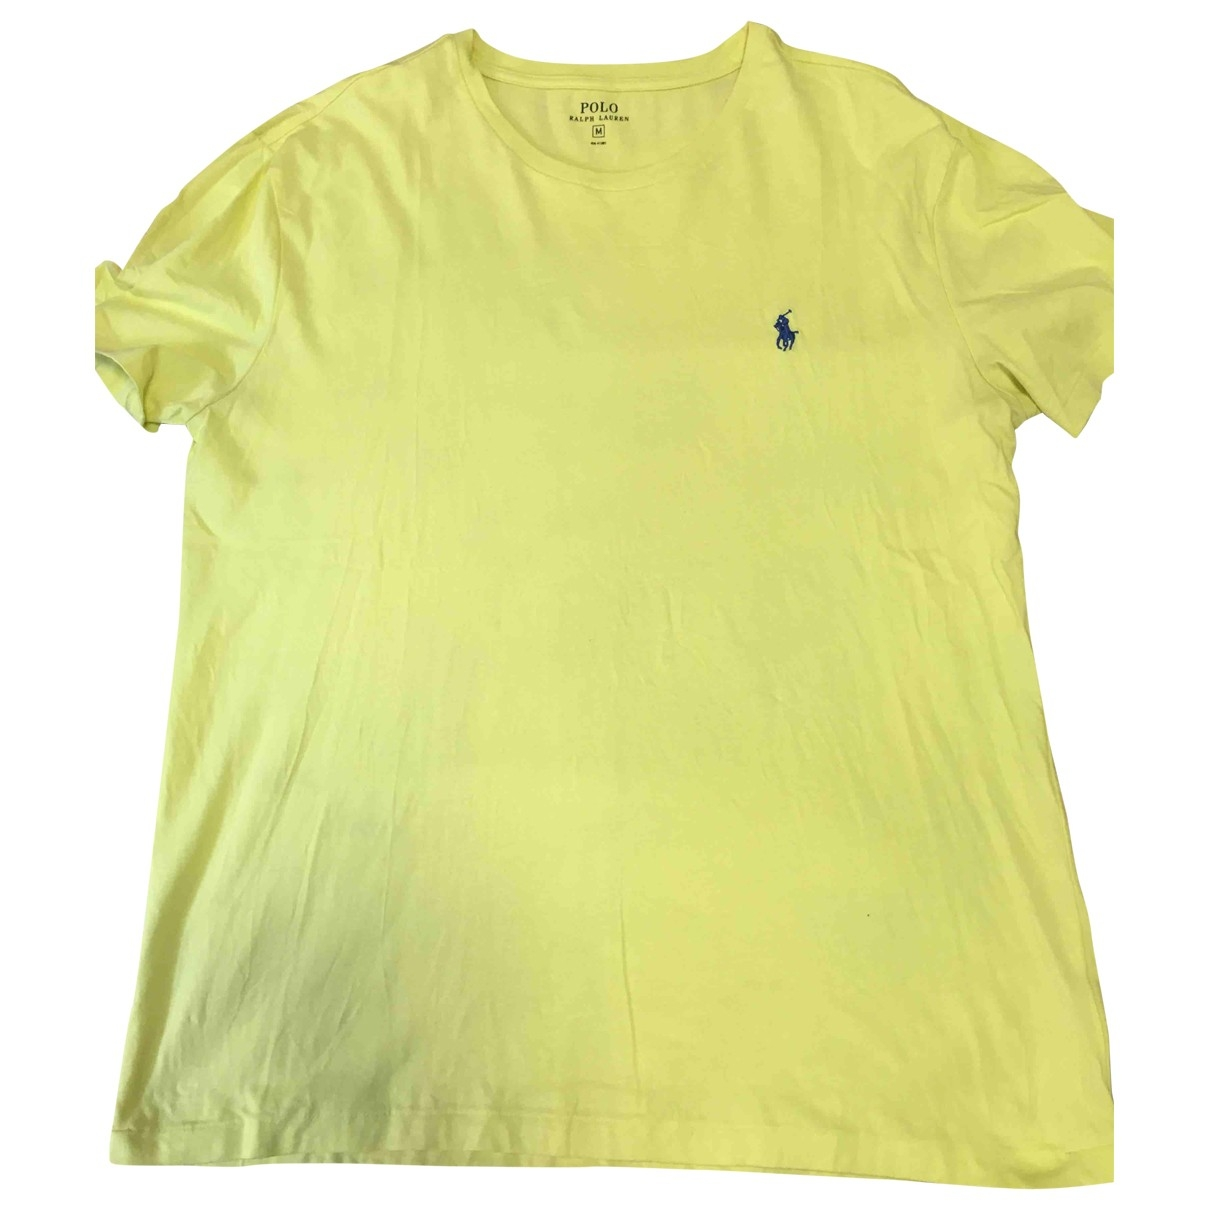 Polo Ralph Lauren \N Yellow Cotton T-shirts for Men M International